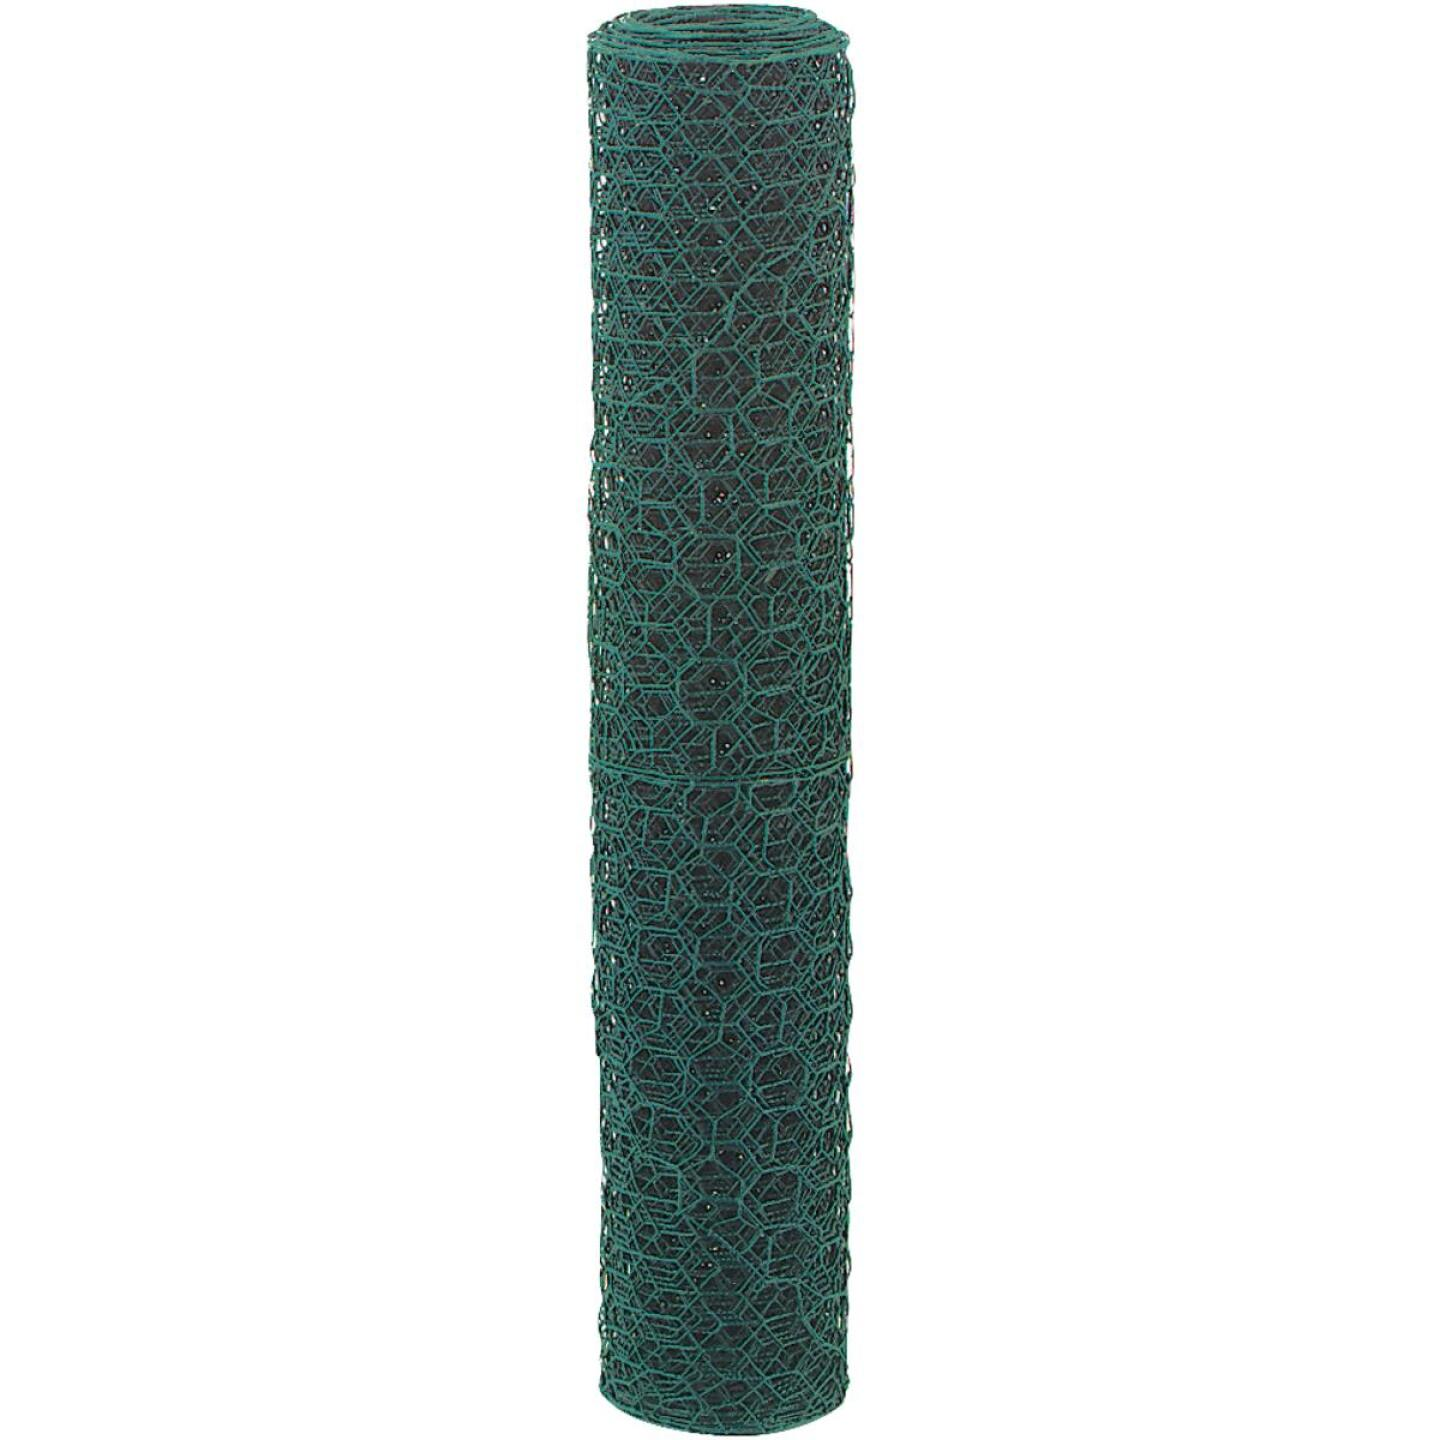 1 In. x 48 In. H. x 25 Ft. L. Green Vinyl-Coated Poultry Netting Image 2